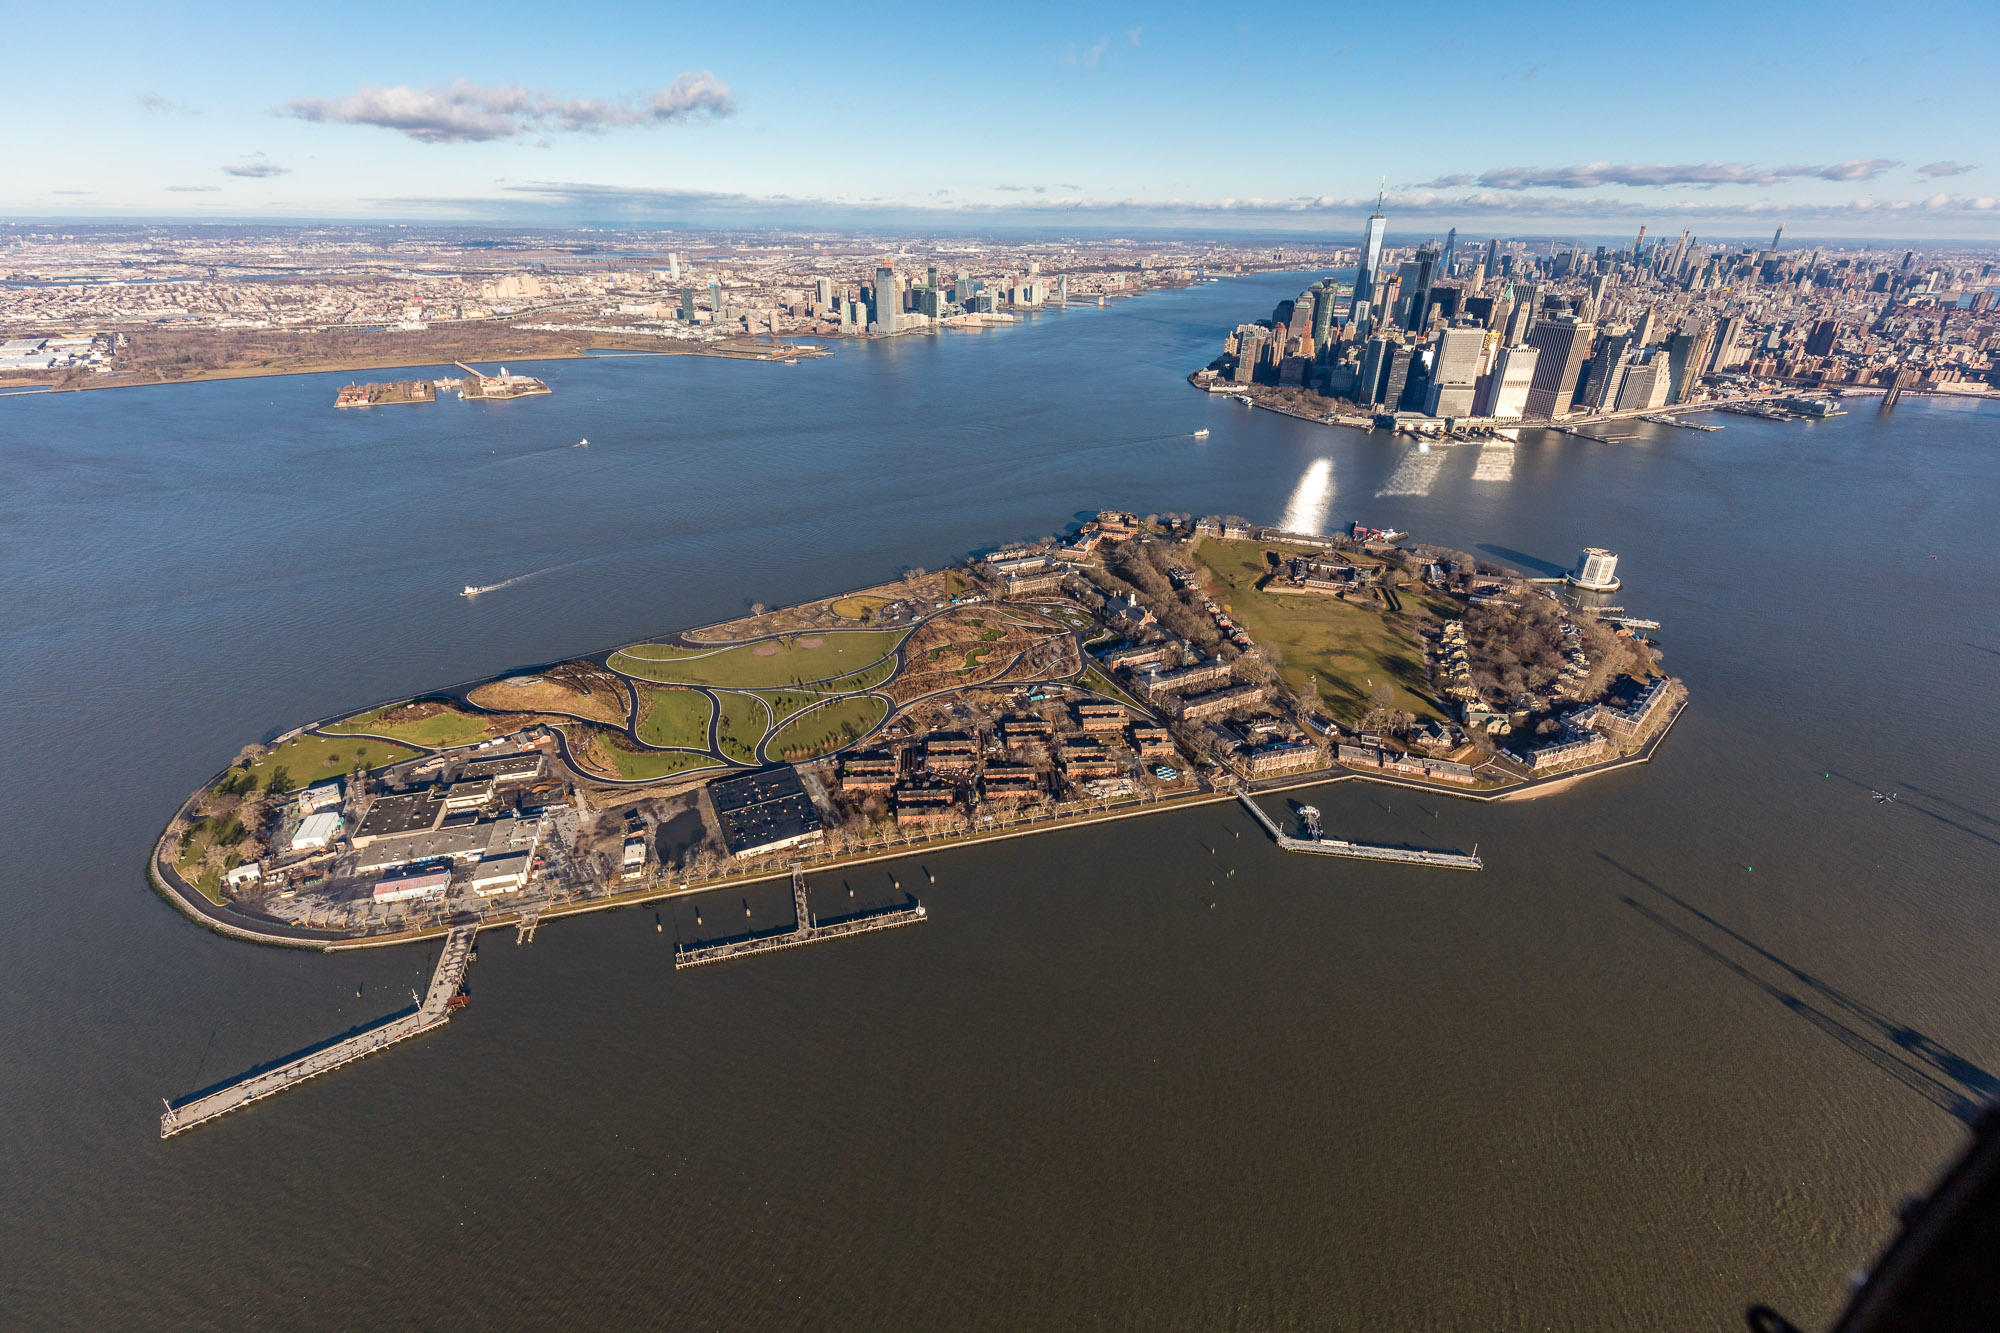 A climate change 'laboratory' may come to Governors Island